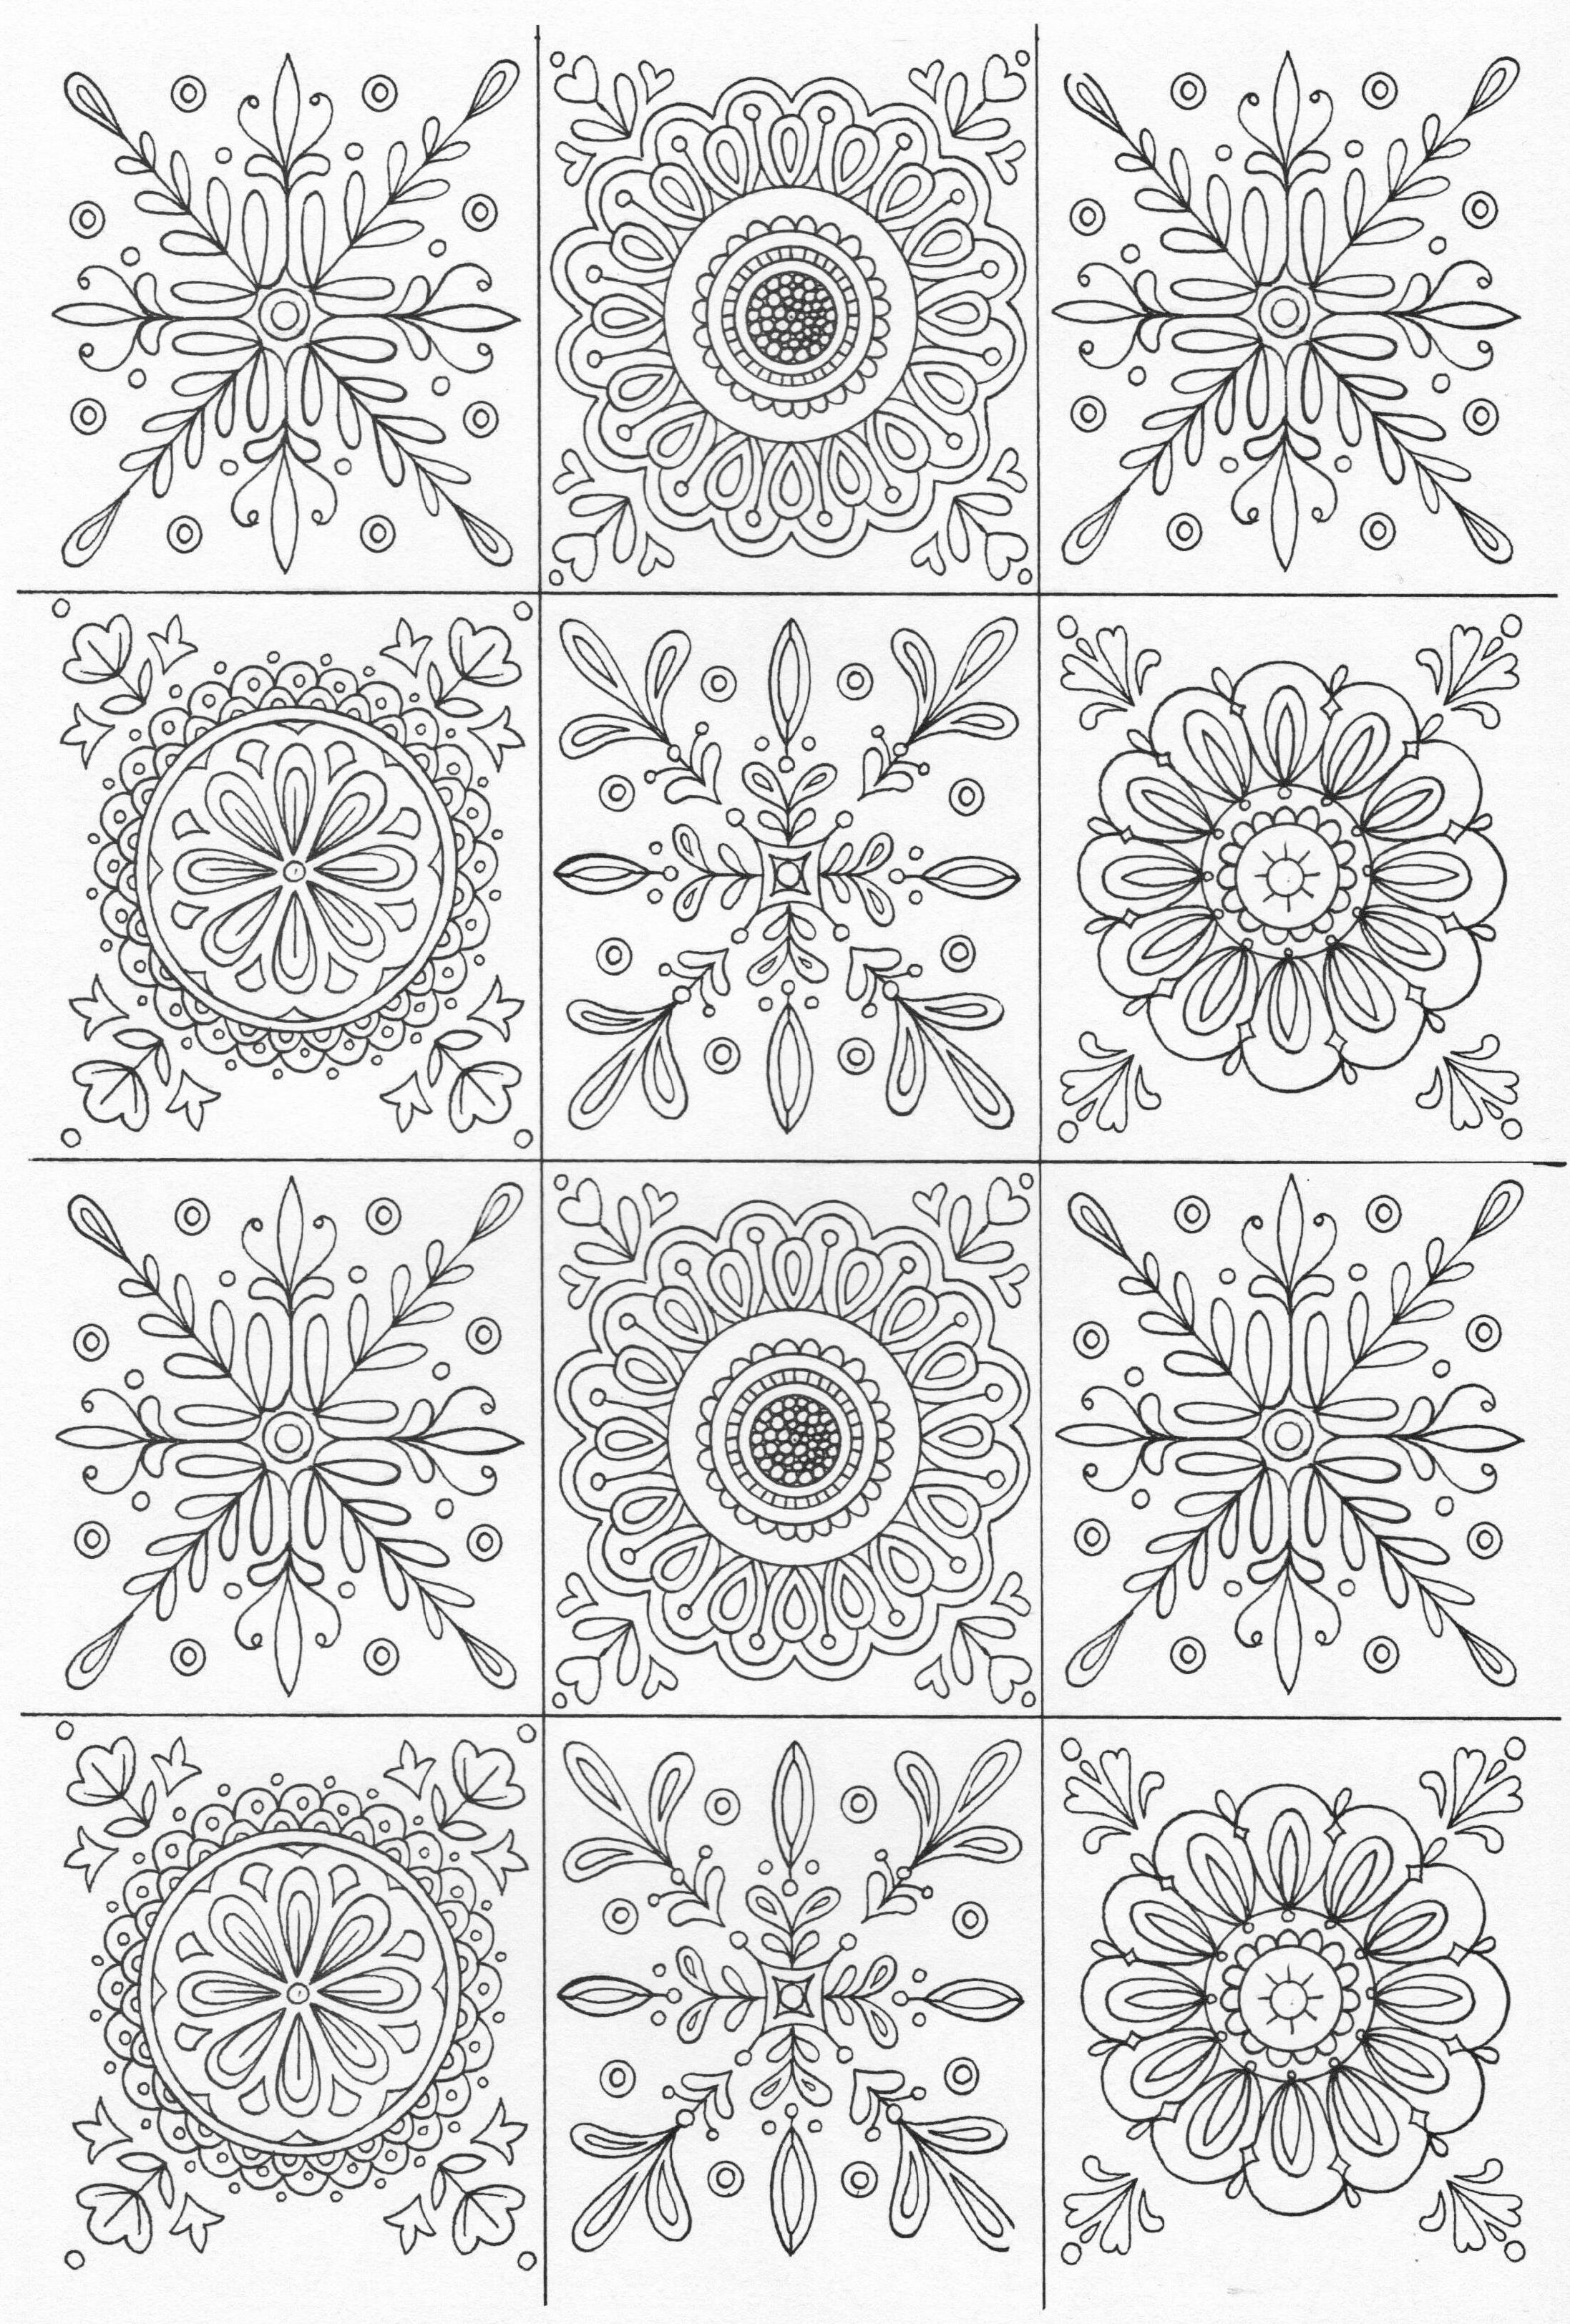 Swear word coloring book sarah bigwood - Scandinavian Coloring Book Pg 19